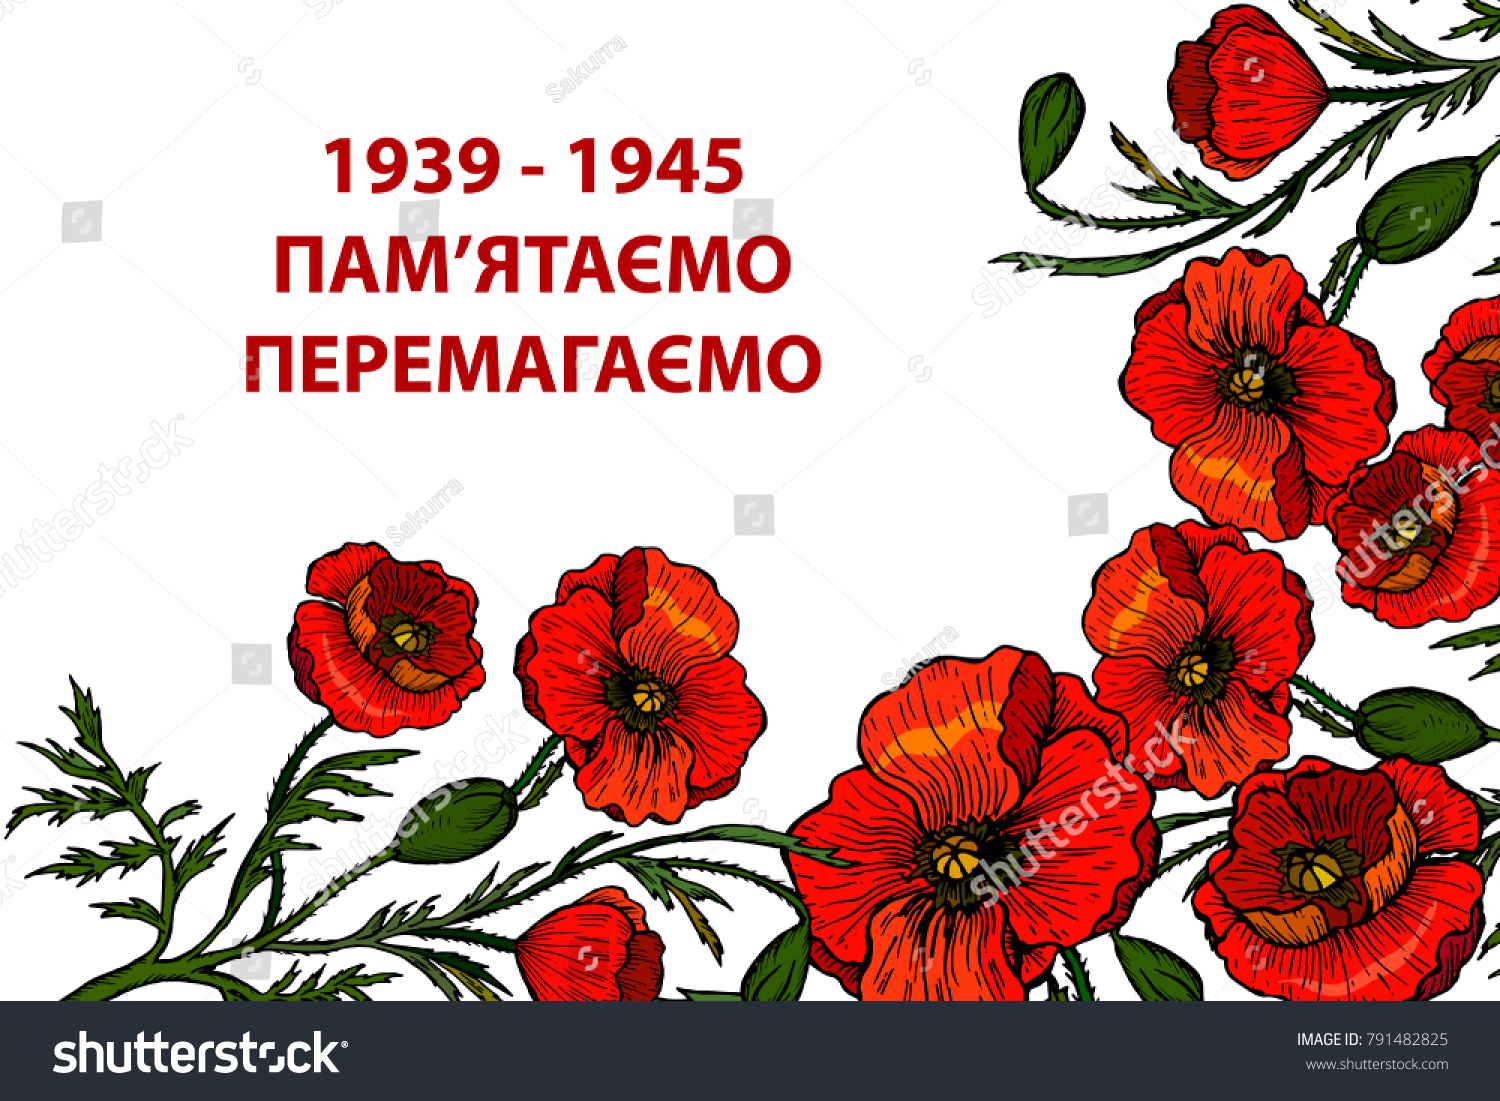 Victory day card 9th may inscription stock vector 791482825 victory day card 9th may inscription in ukraine language poppy flower symbol of the memory buycottarizona